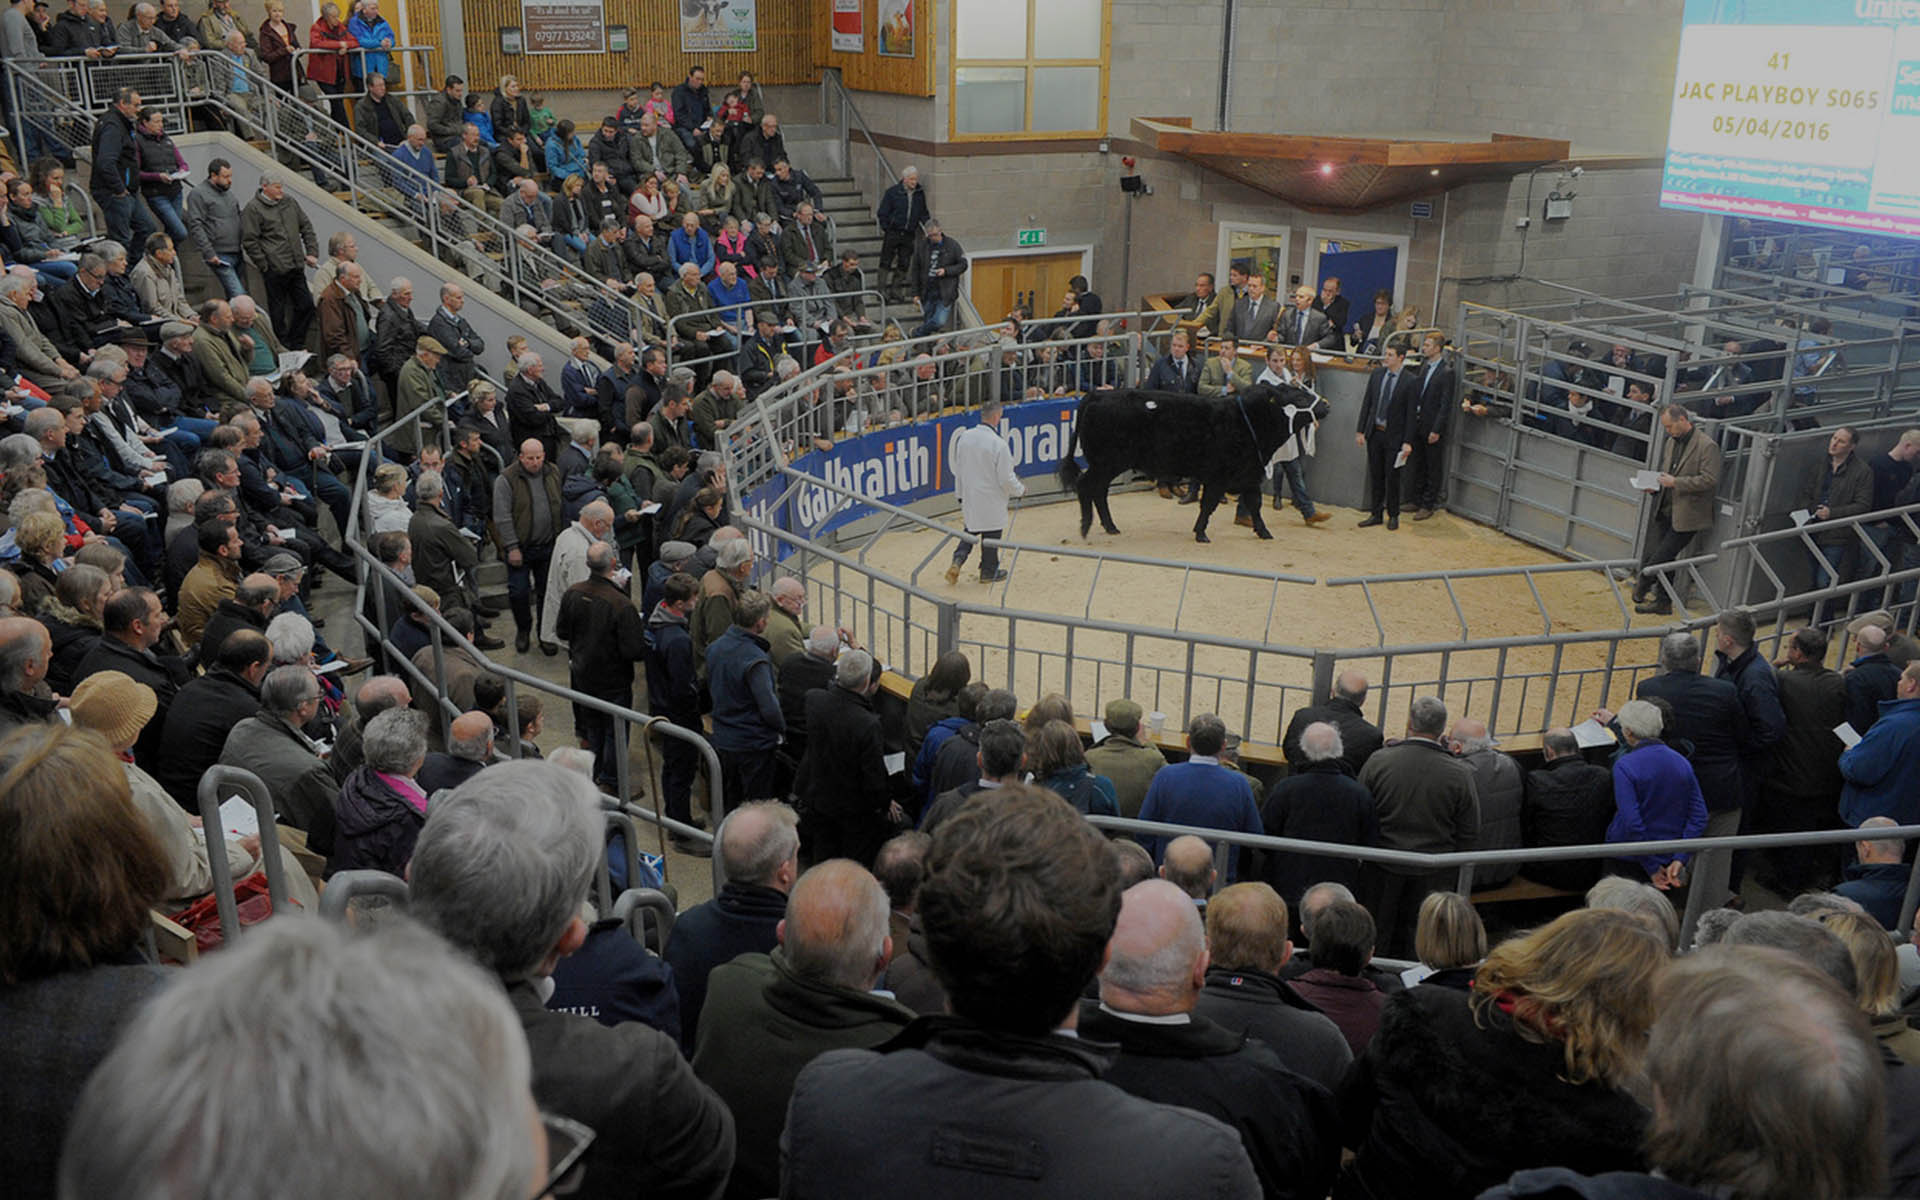 The Institute of Auctioneers and Appraisers in Scotland